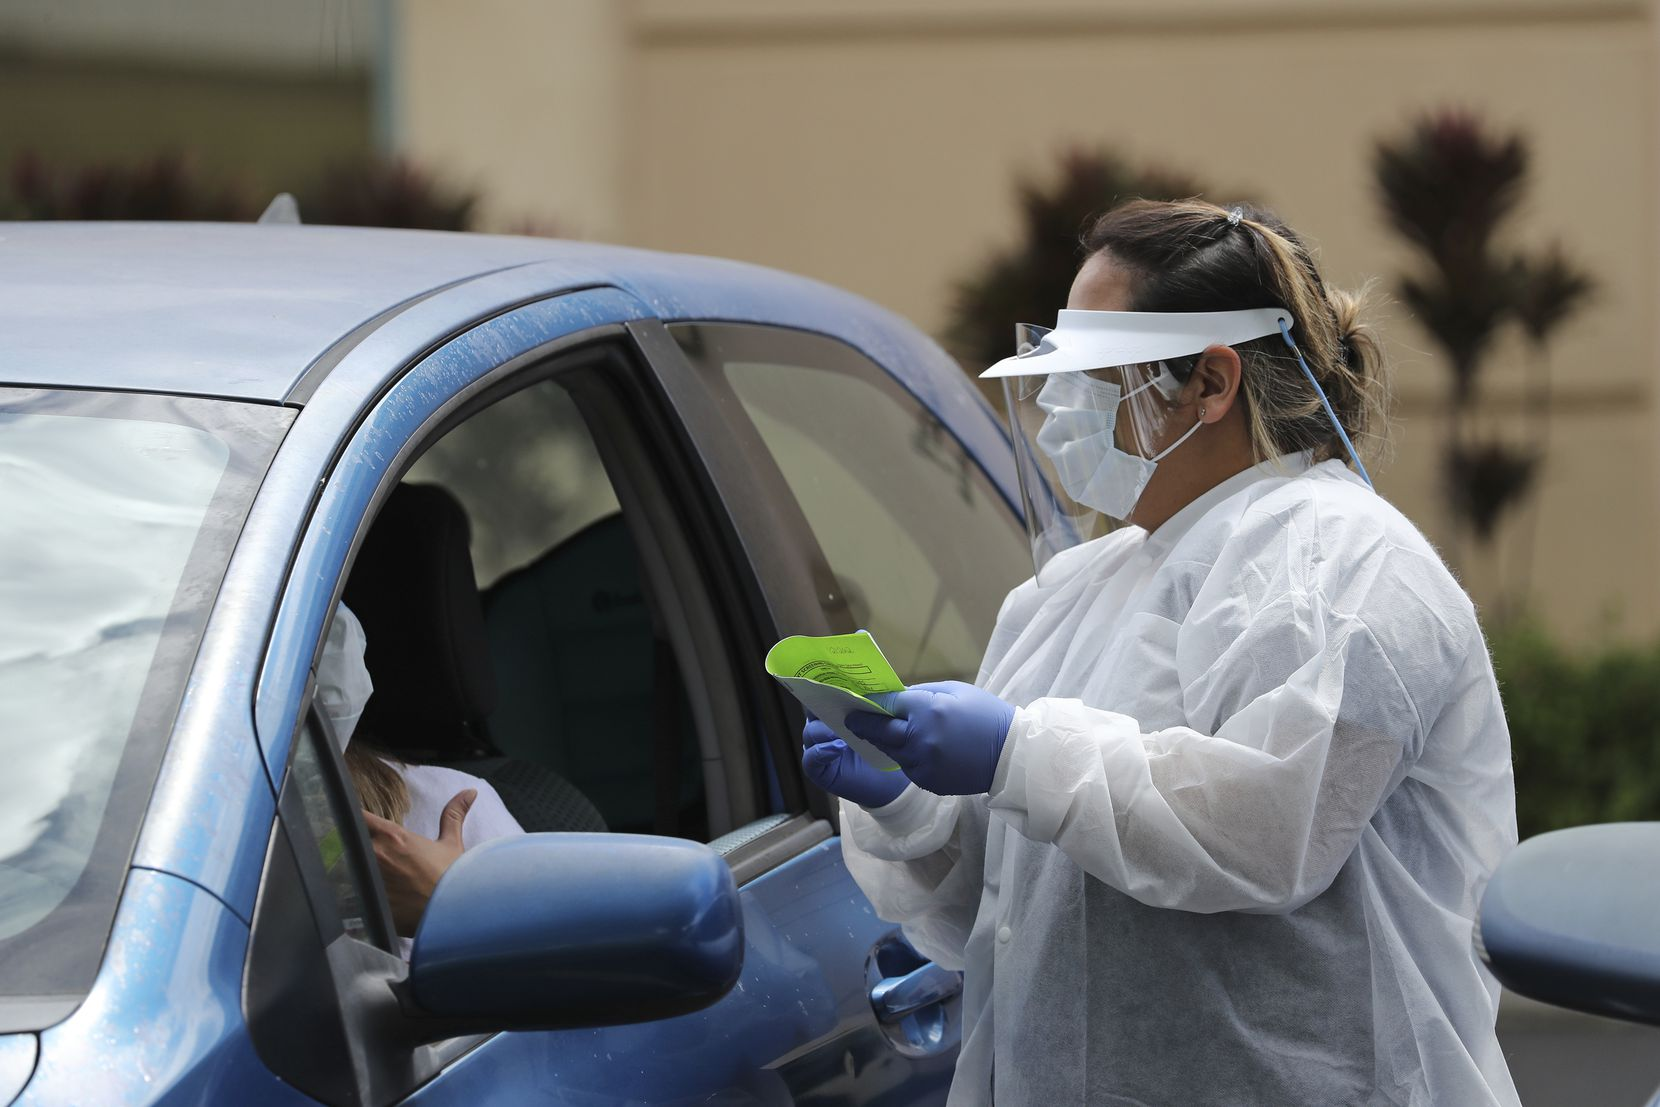 A medical worker at a facility in Pearl City, Hawaii, was fully equipped with eye and body protection to test patients in their vehicles.